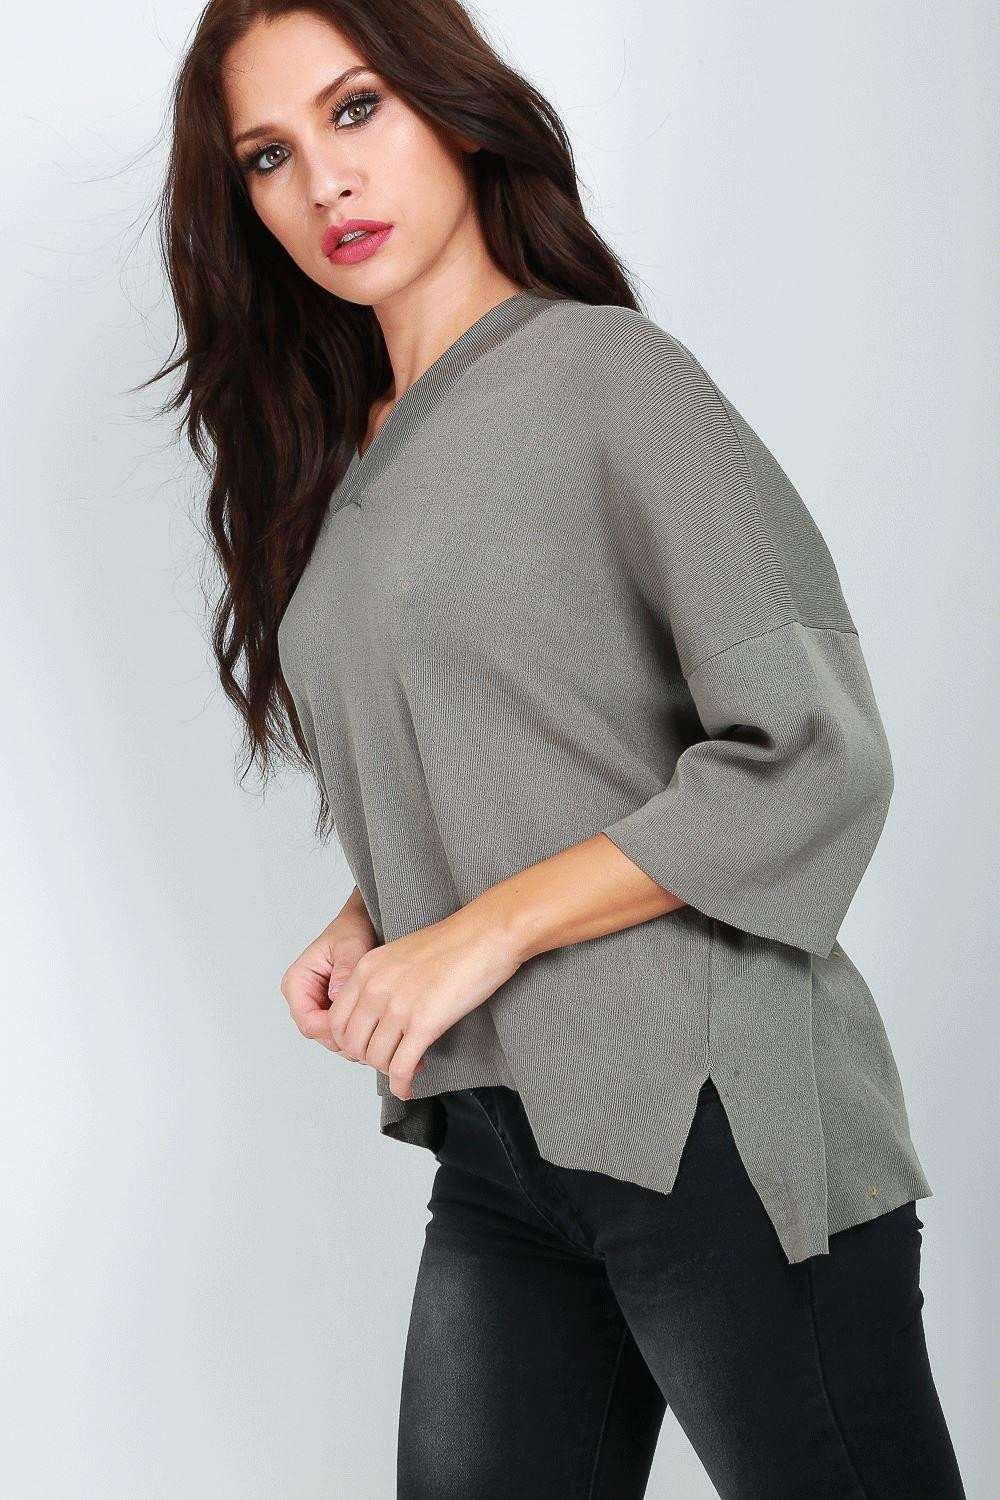 Nancy V Neck Bat Wing Knitted Jumper - bejealous-com